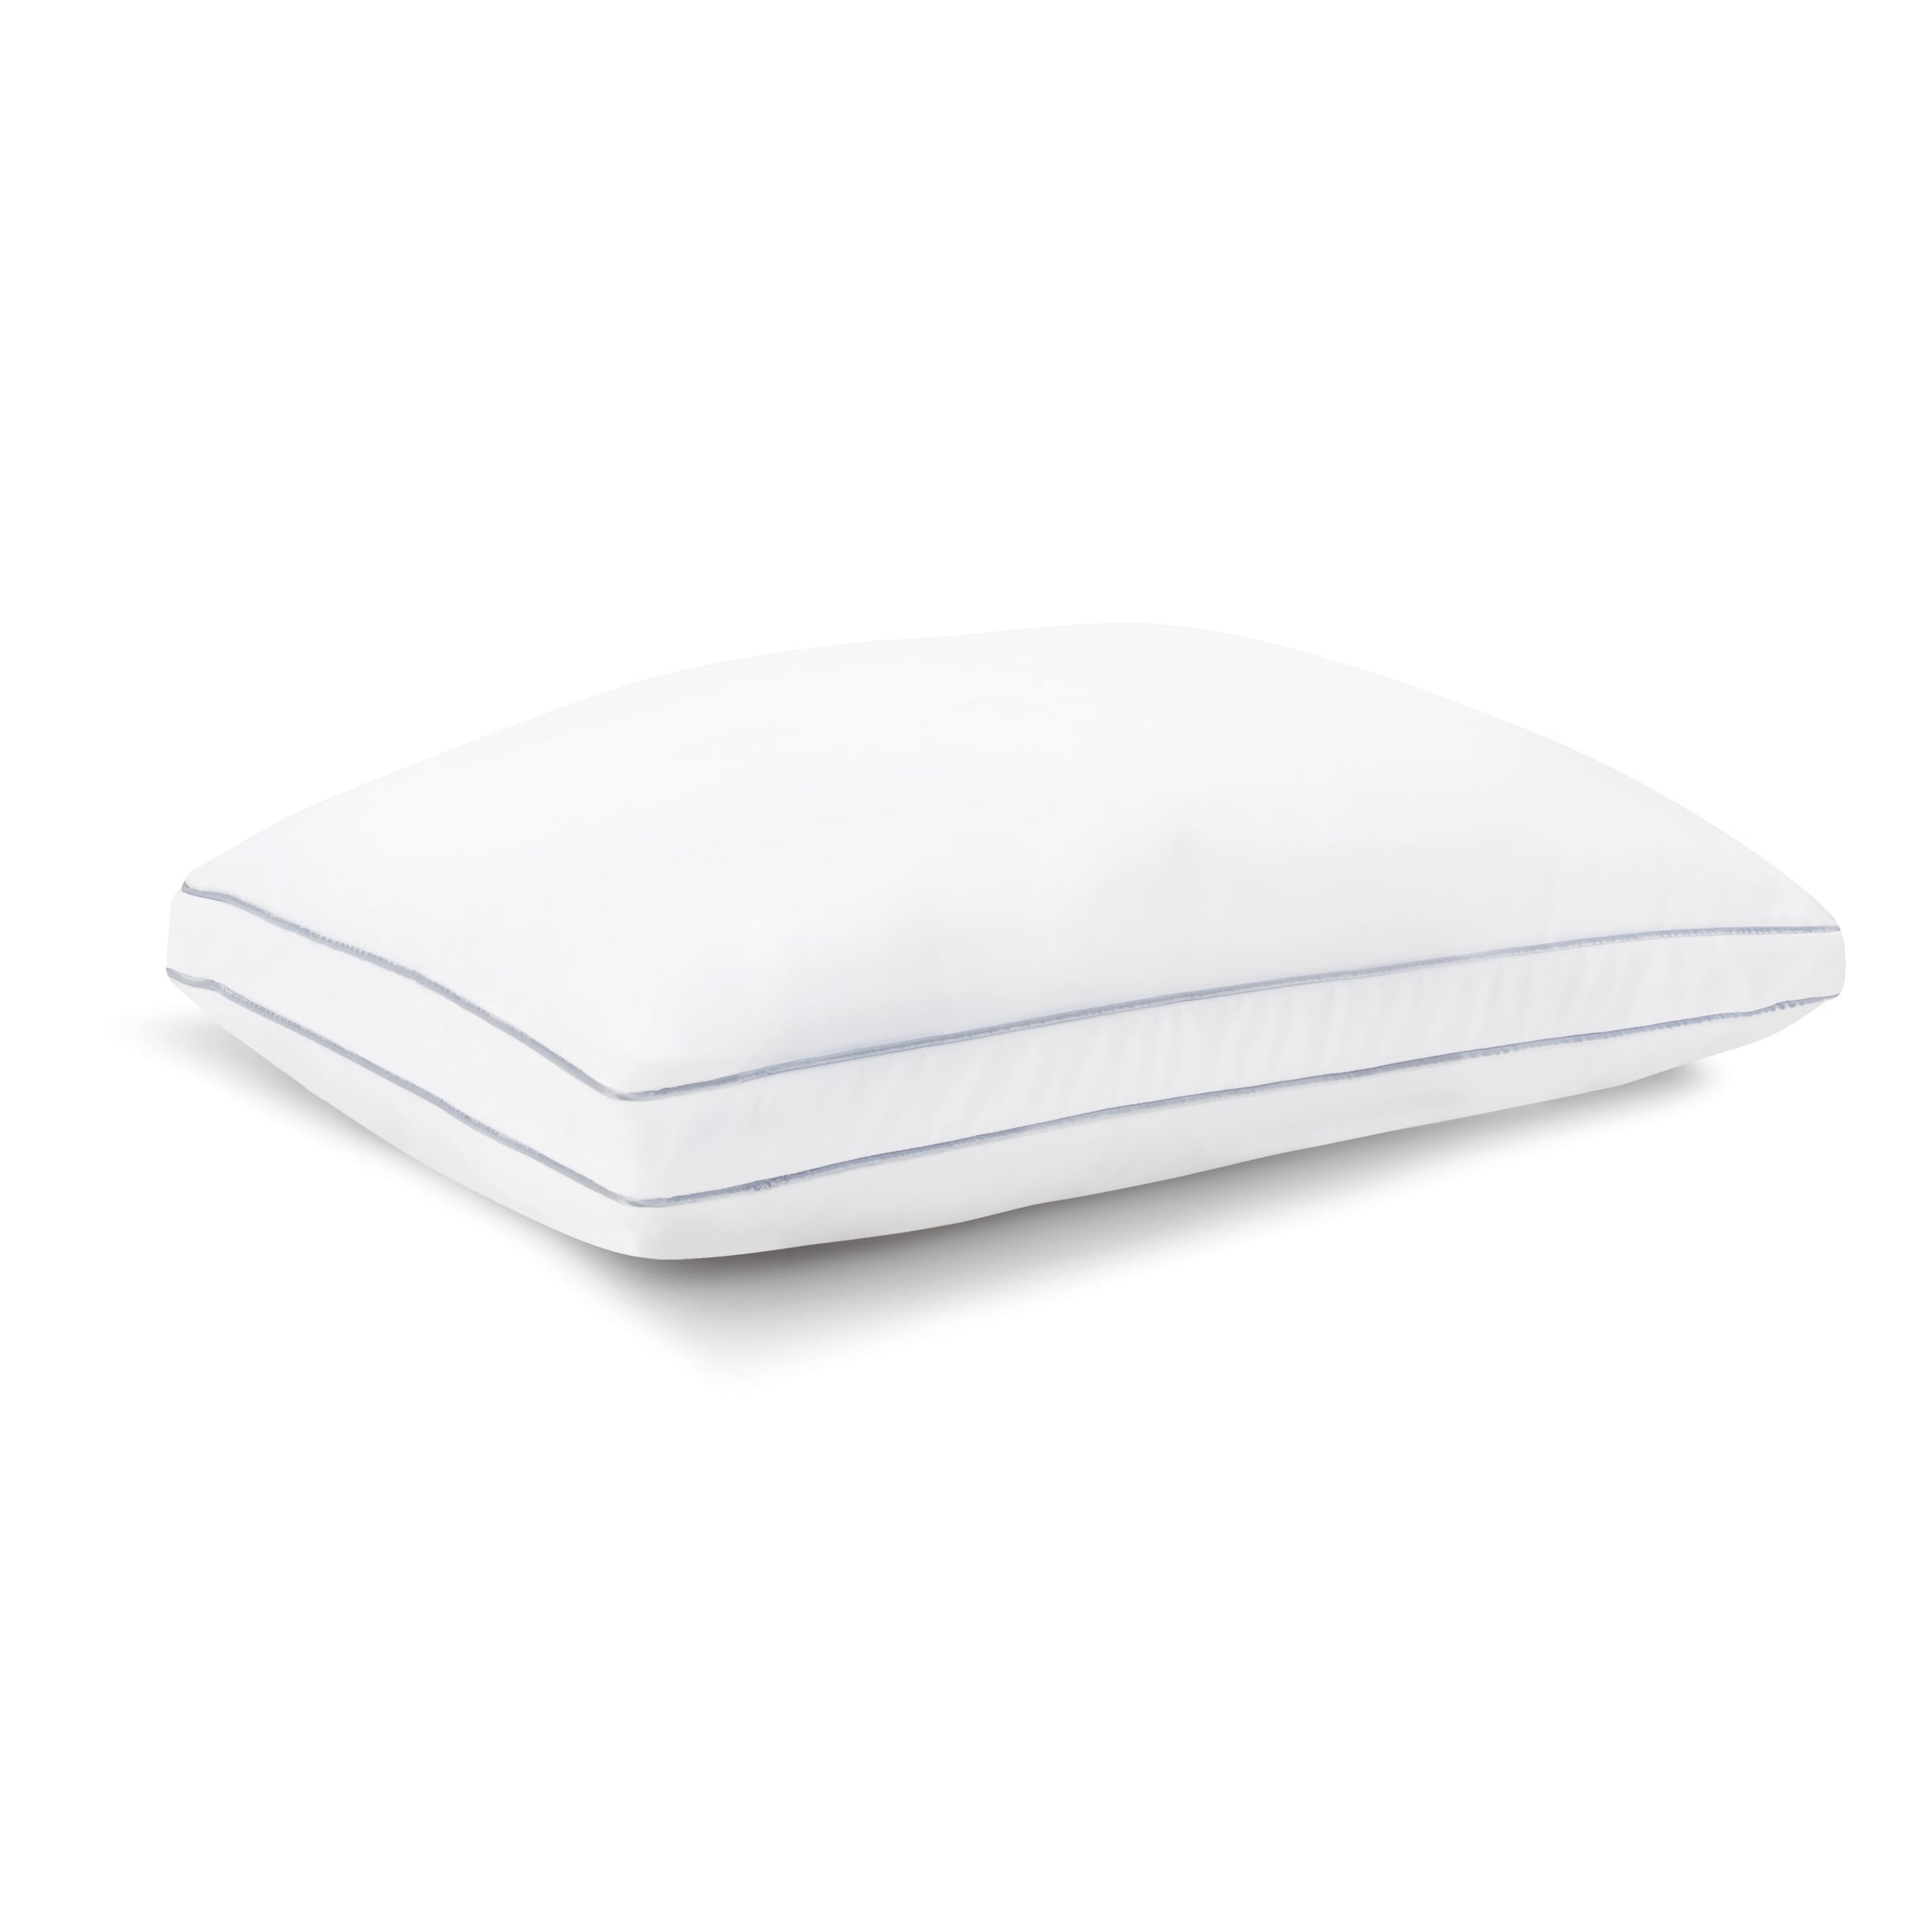 memory free from product shipping classic foam comforpedic bath pillow orders on loft bedding overstock beautyrest over